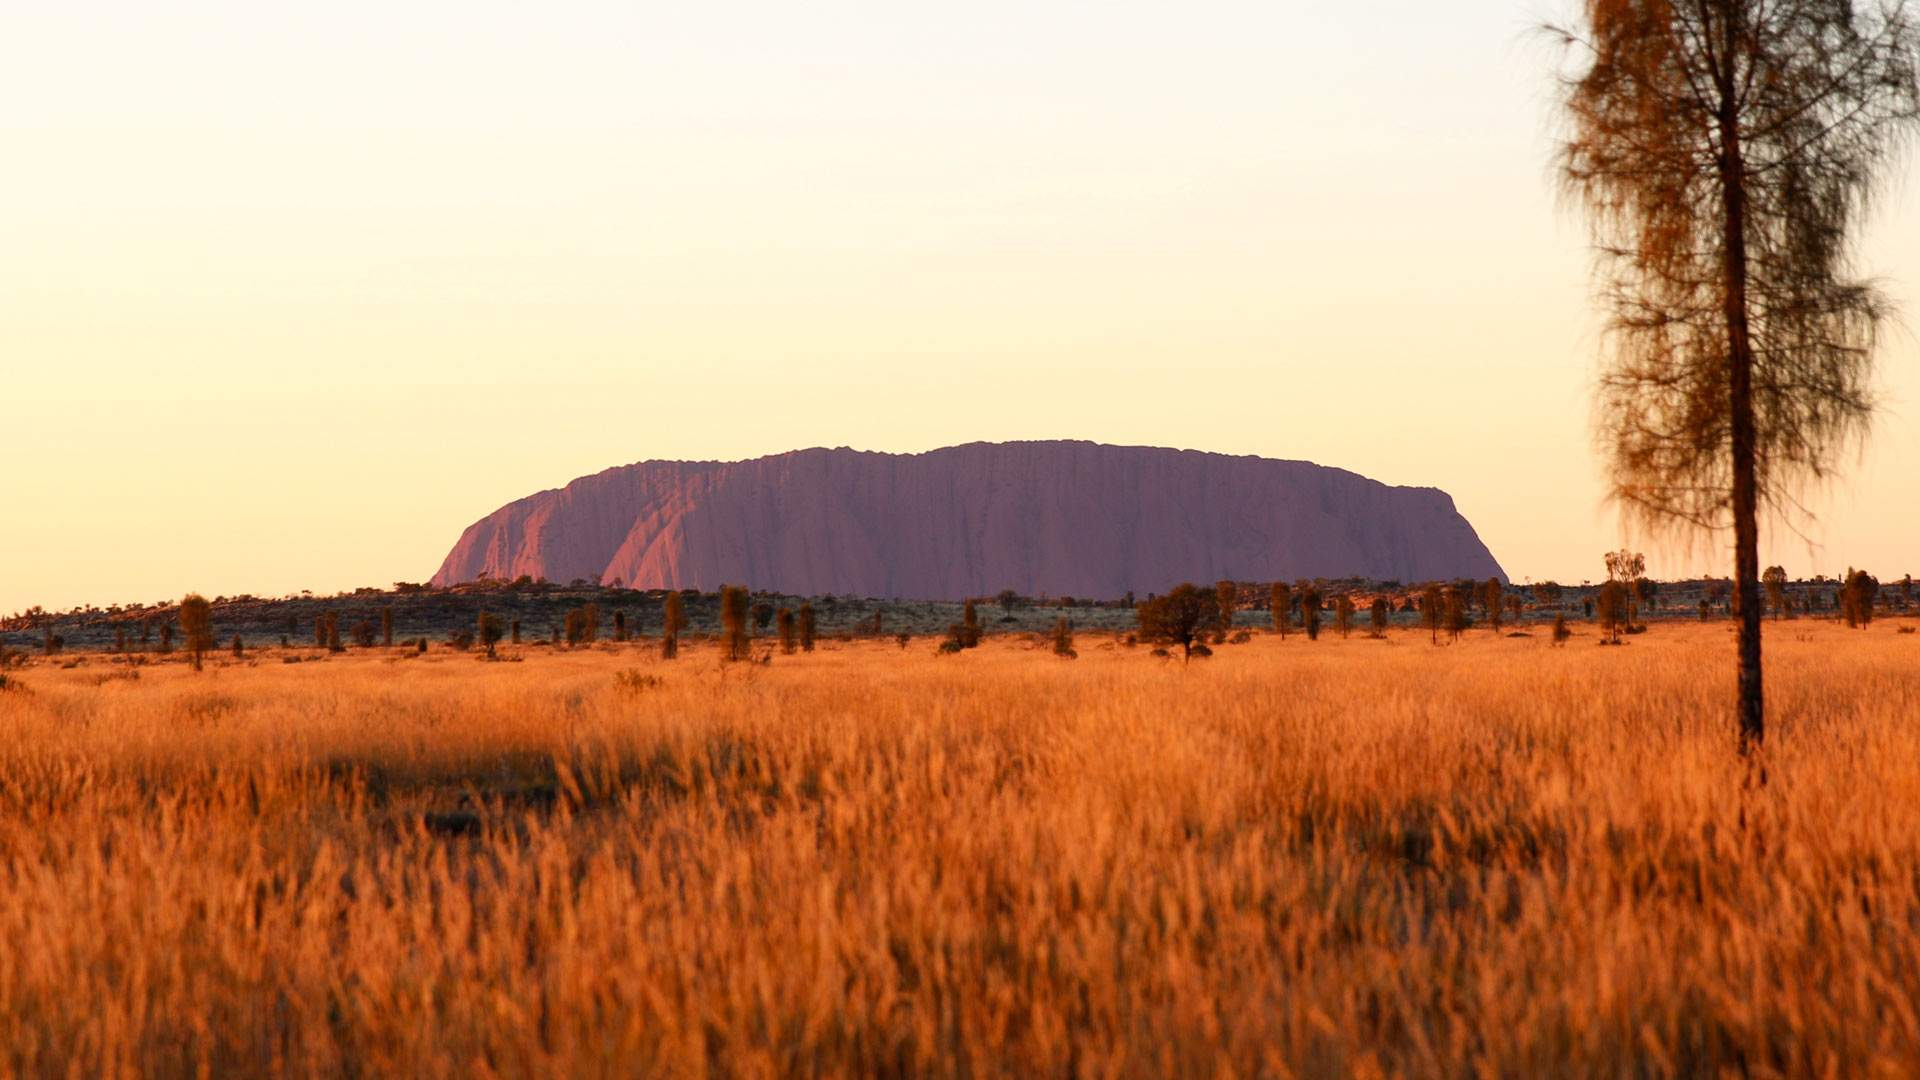 Uluru-Kata Tjuta National Park Has Been Named One of 2020's Ultimate Travel Experiences